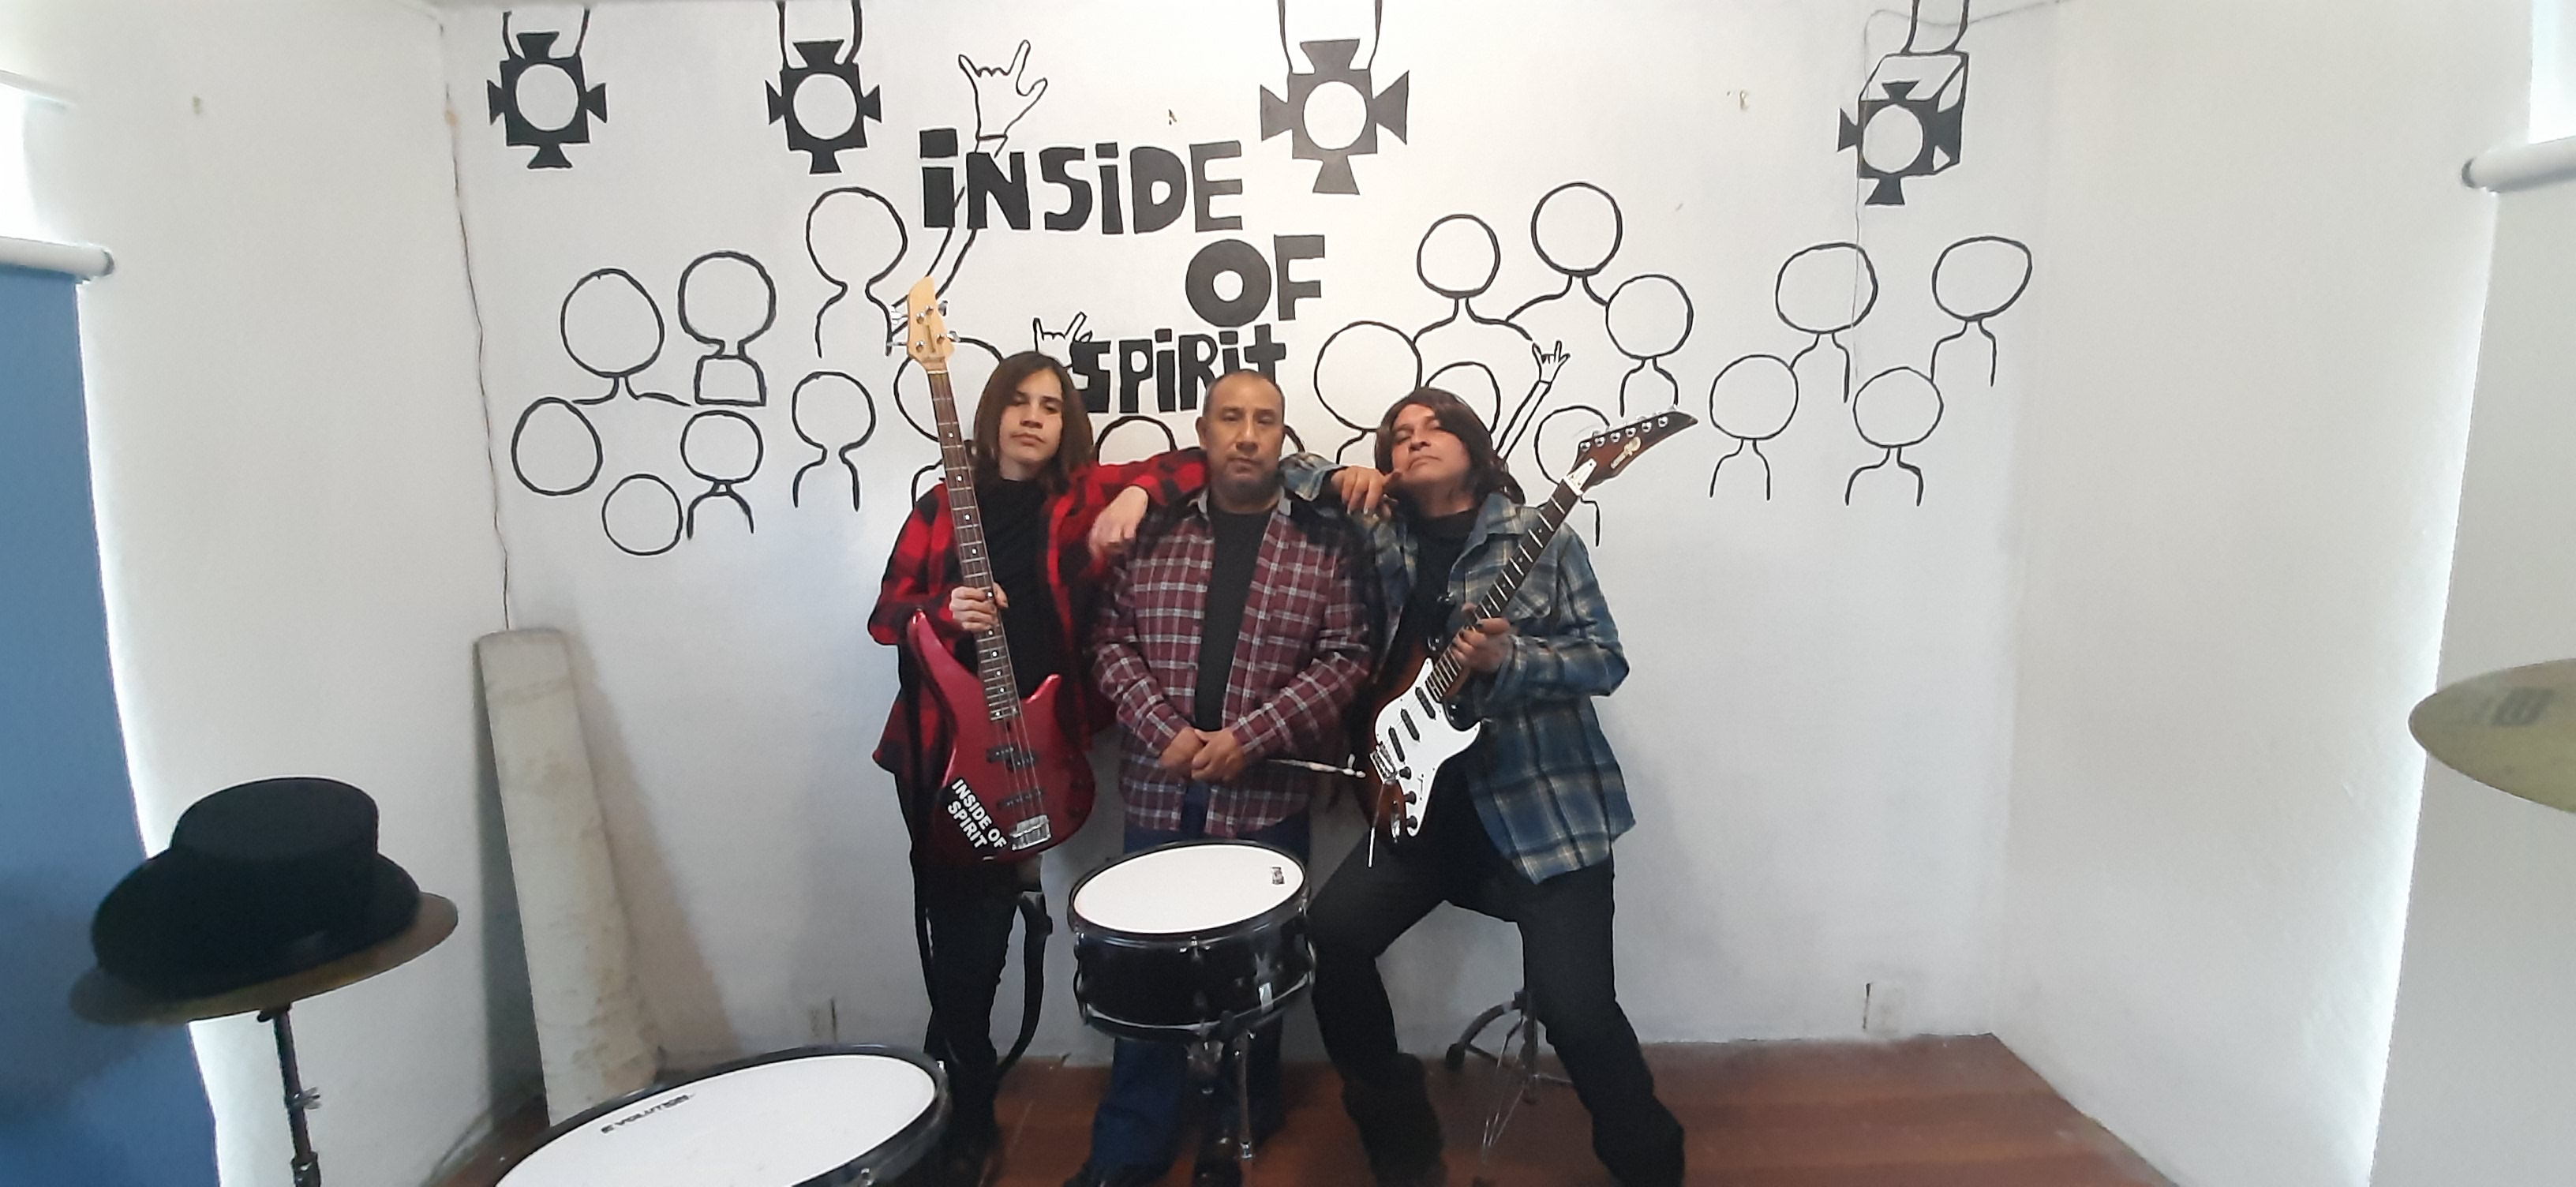 Talented Band, Inside of Spirit, Working on a Catchy New Album and Fans Cannot Wait